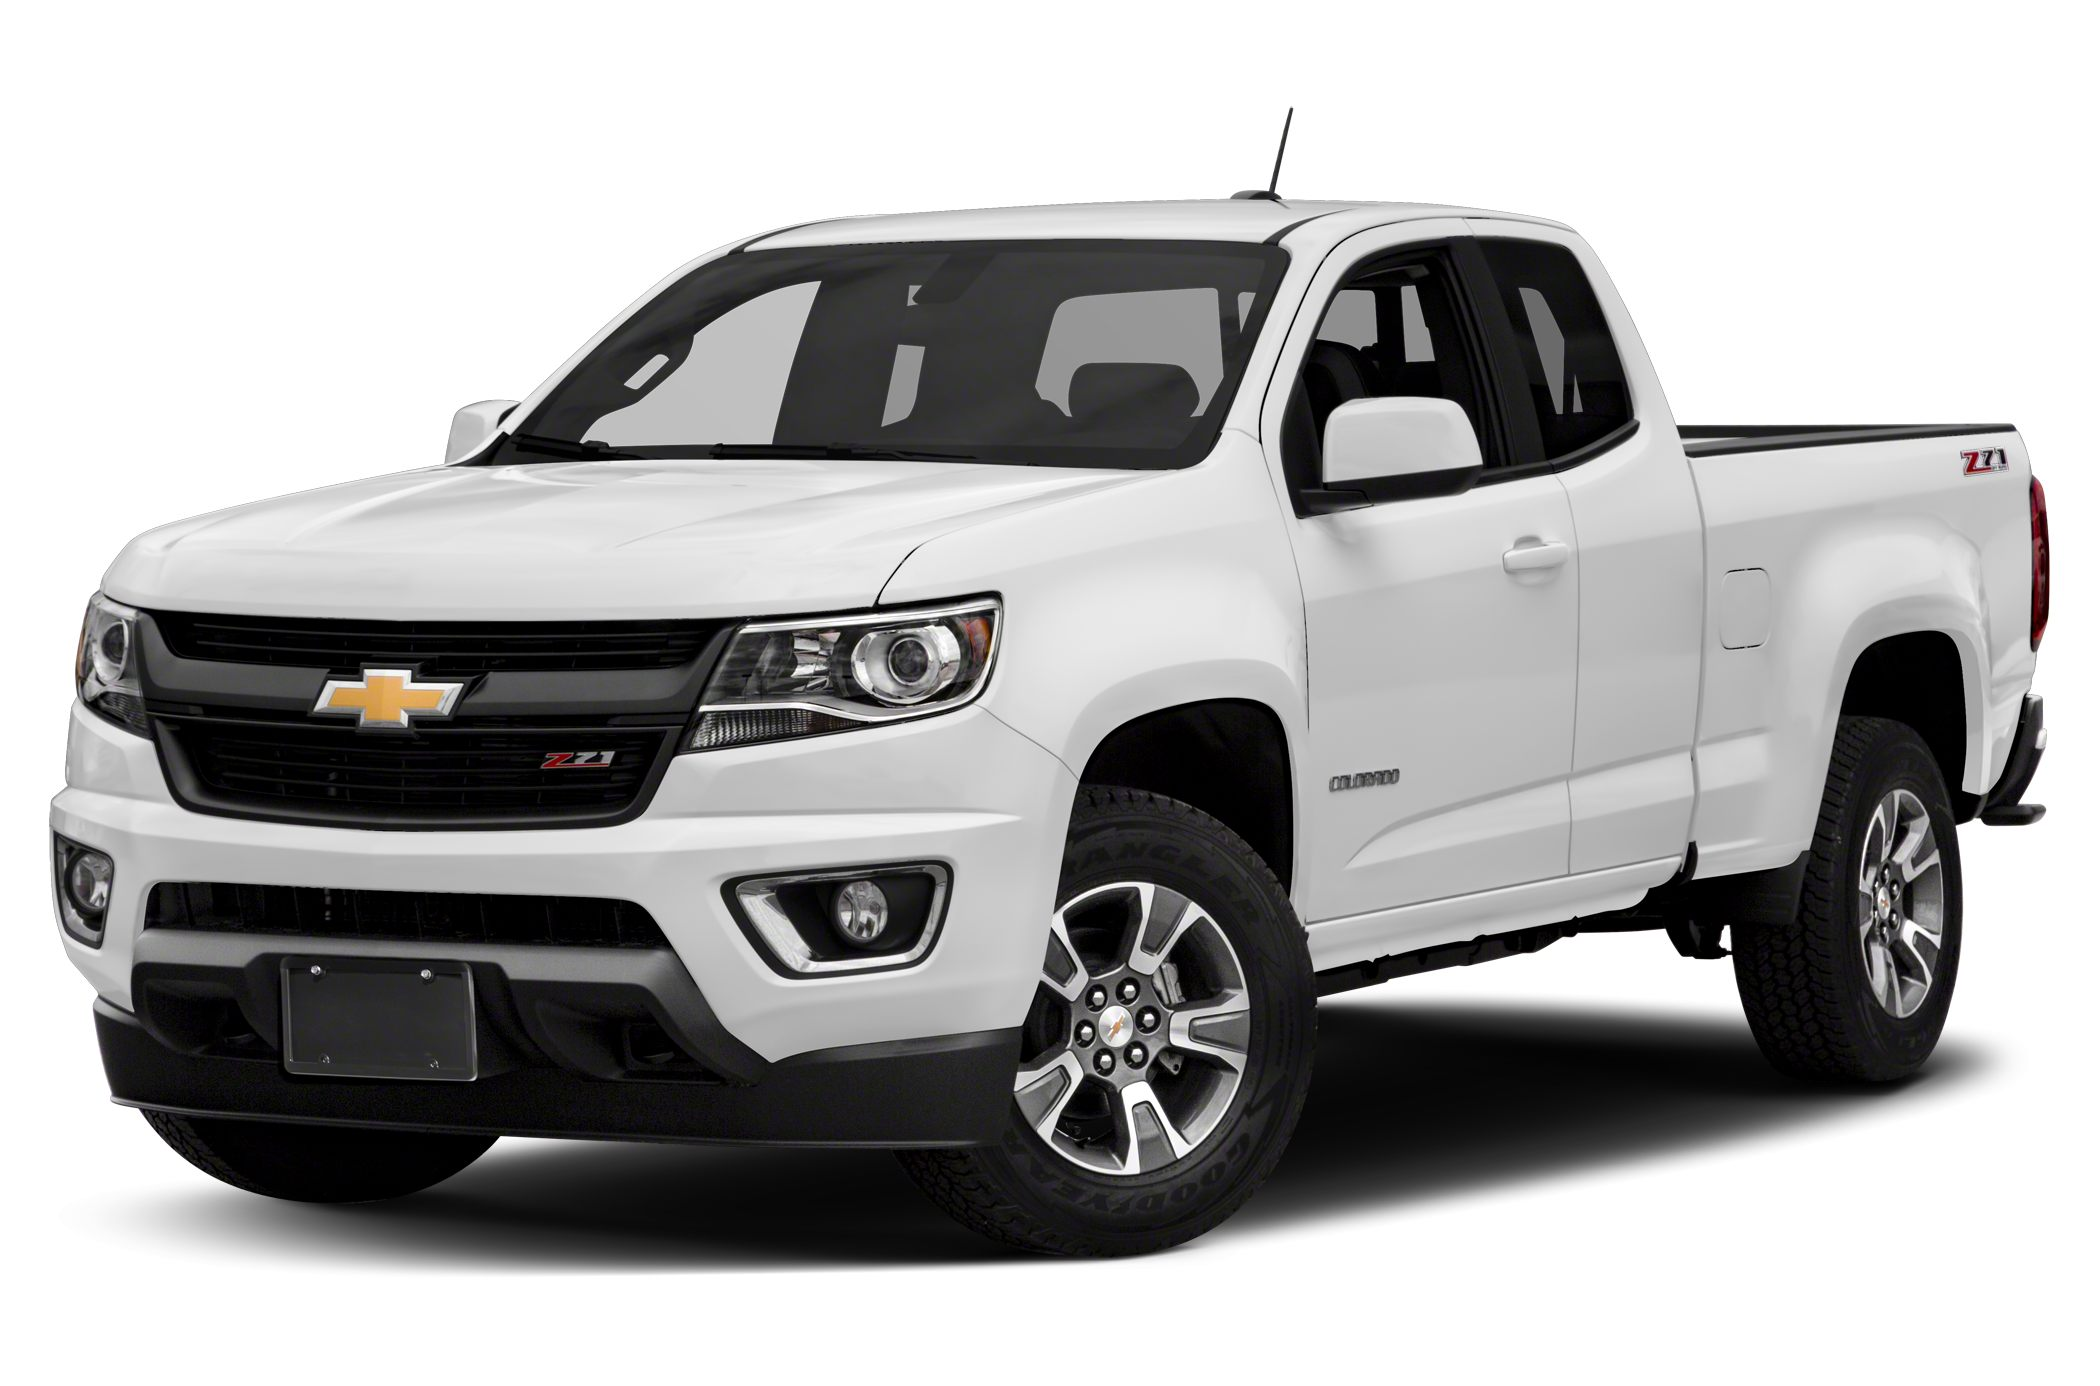 2018 GMC Canyon vs 2018 Toyota Ta a and 2018 Chevrolet Colorado